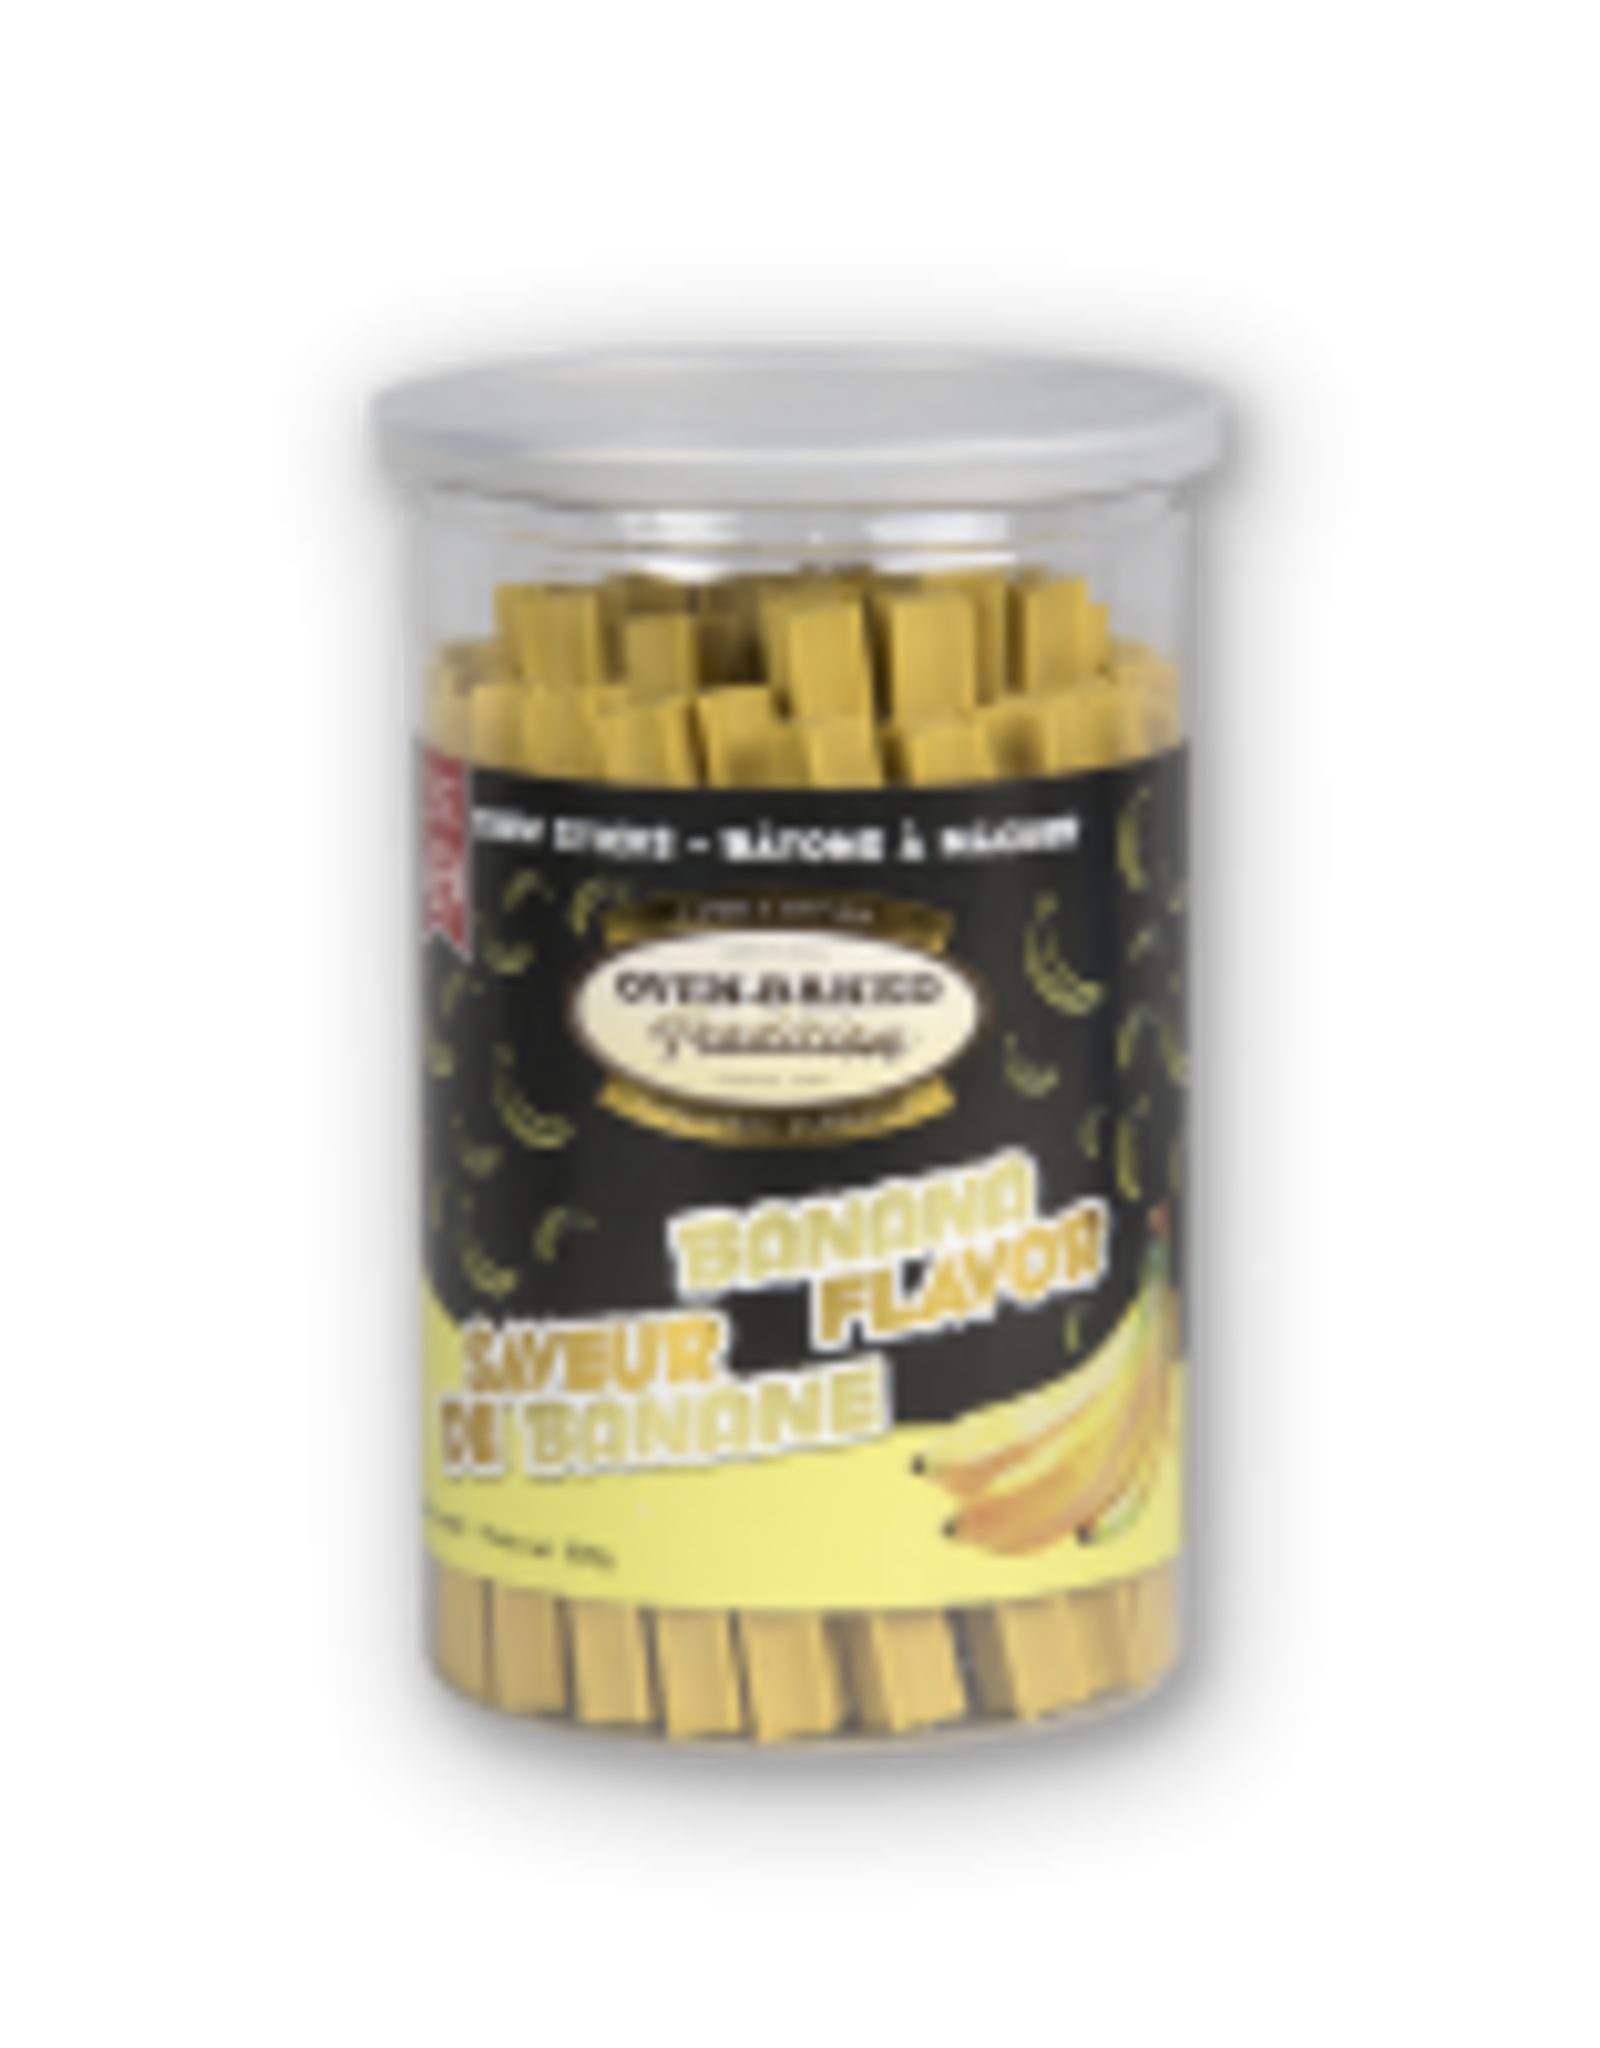 Ovenbaked Tradition Oven Baked Tradition Banana Flavour Chew Sticks 500g